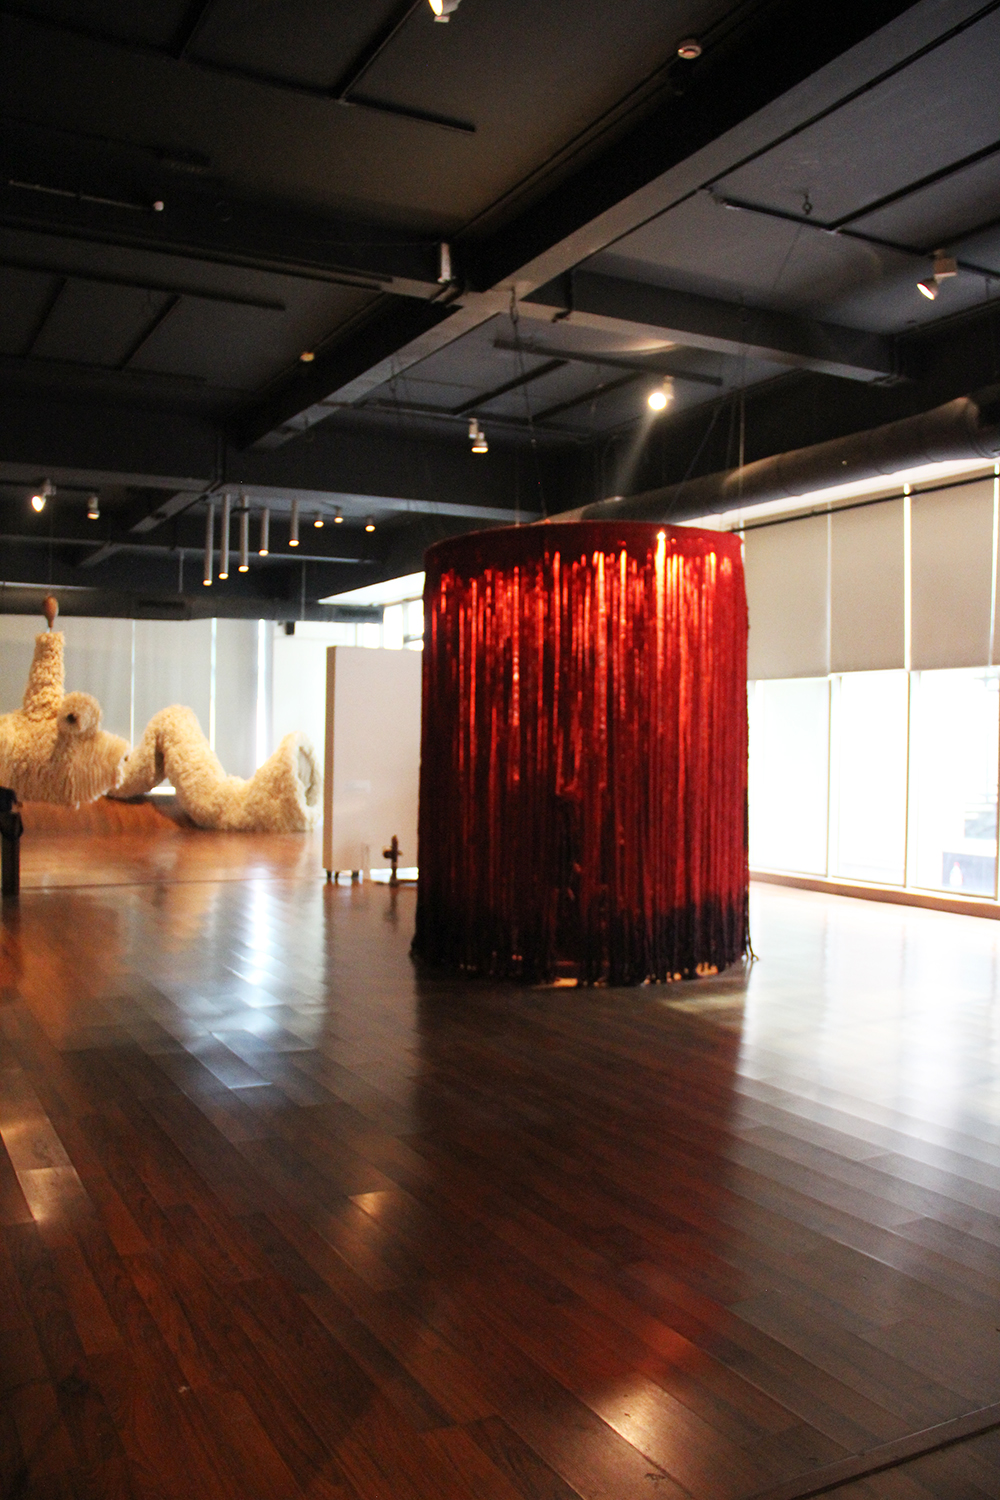 Installation shot from the Fibre Fables exhibition 2016, Stainless Gallery, Delhi, India